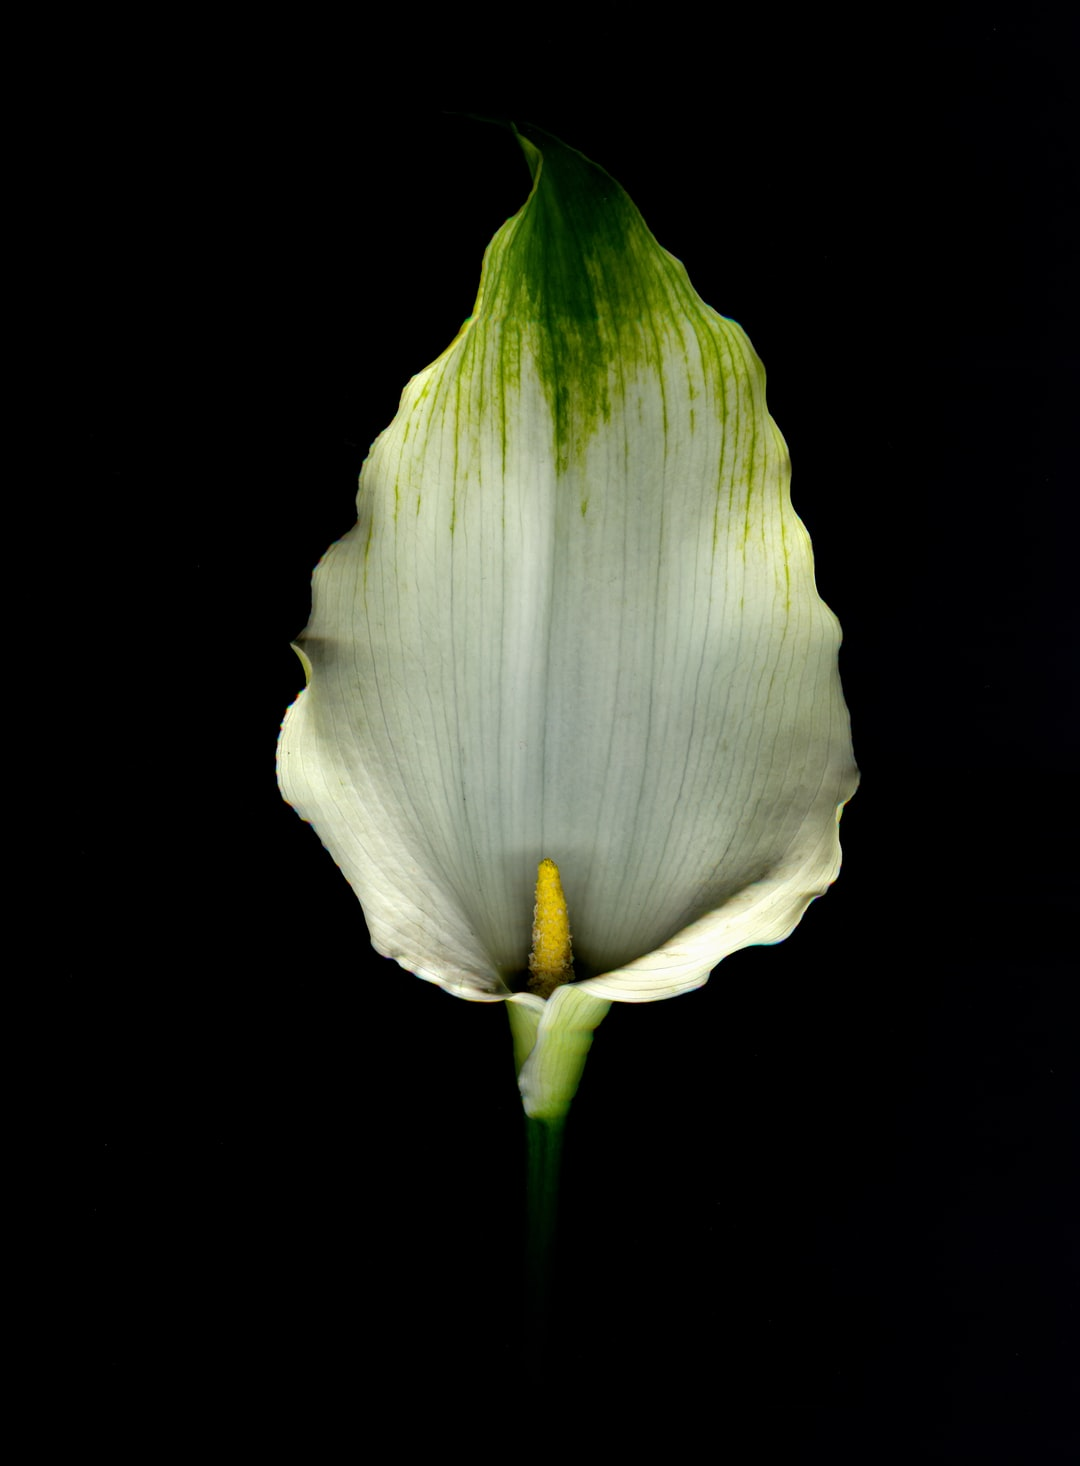 The beautiful, elegant calla lily, oft known as the funeral flower.  This flower is considered a weed here in Tasmania, which is probably why it grows profusely in my garden.  It must feel right at home.